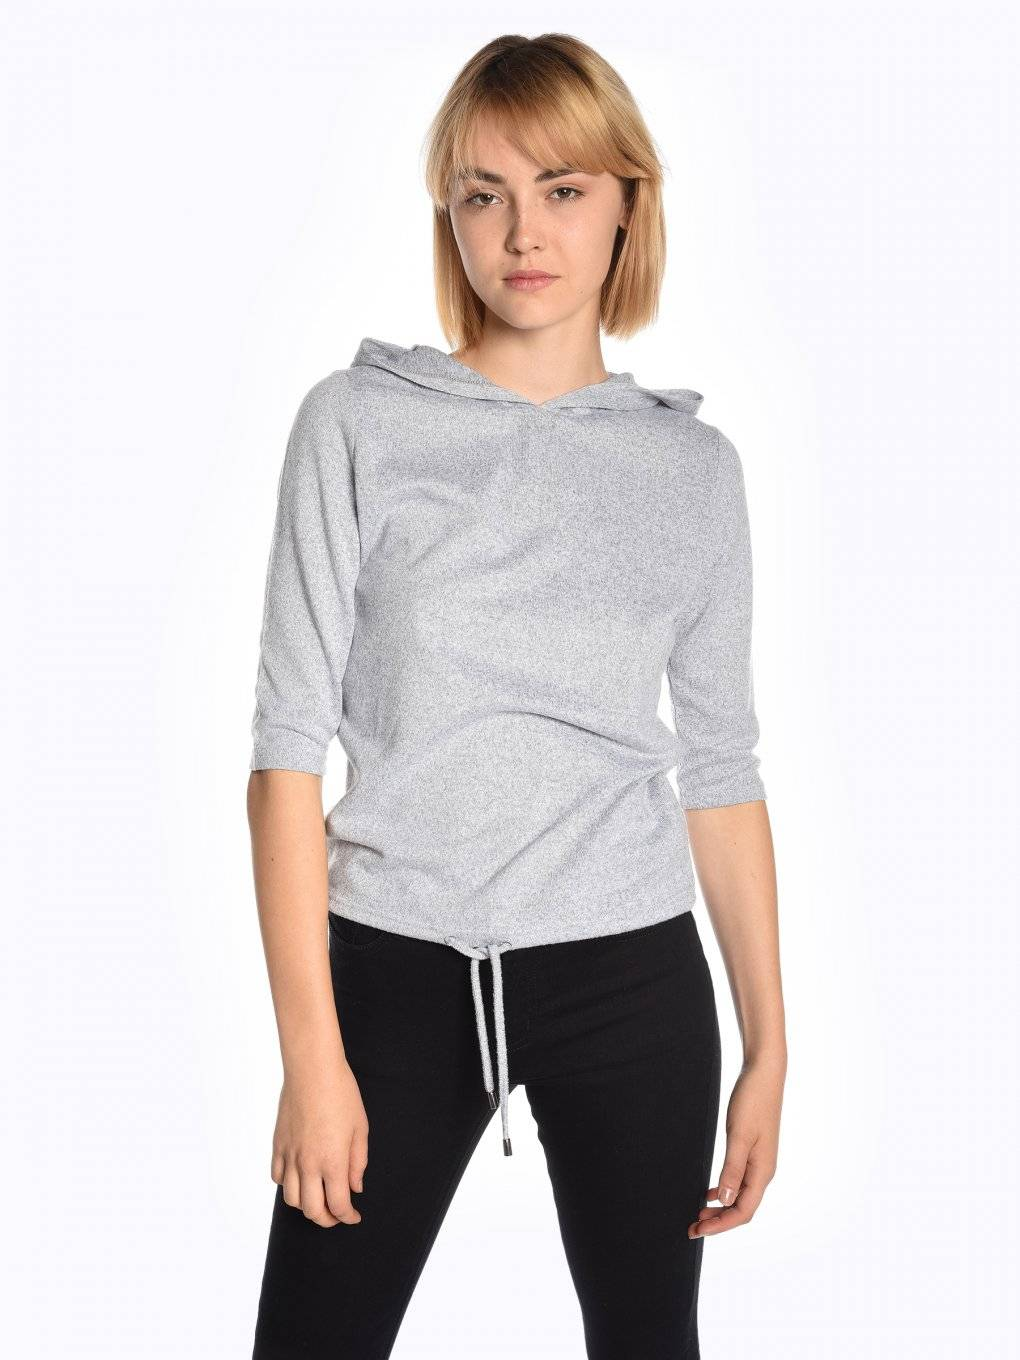 Hooded 3/4 sleeve t-shirt